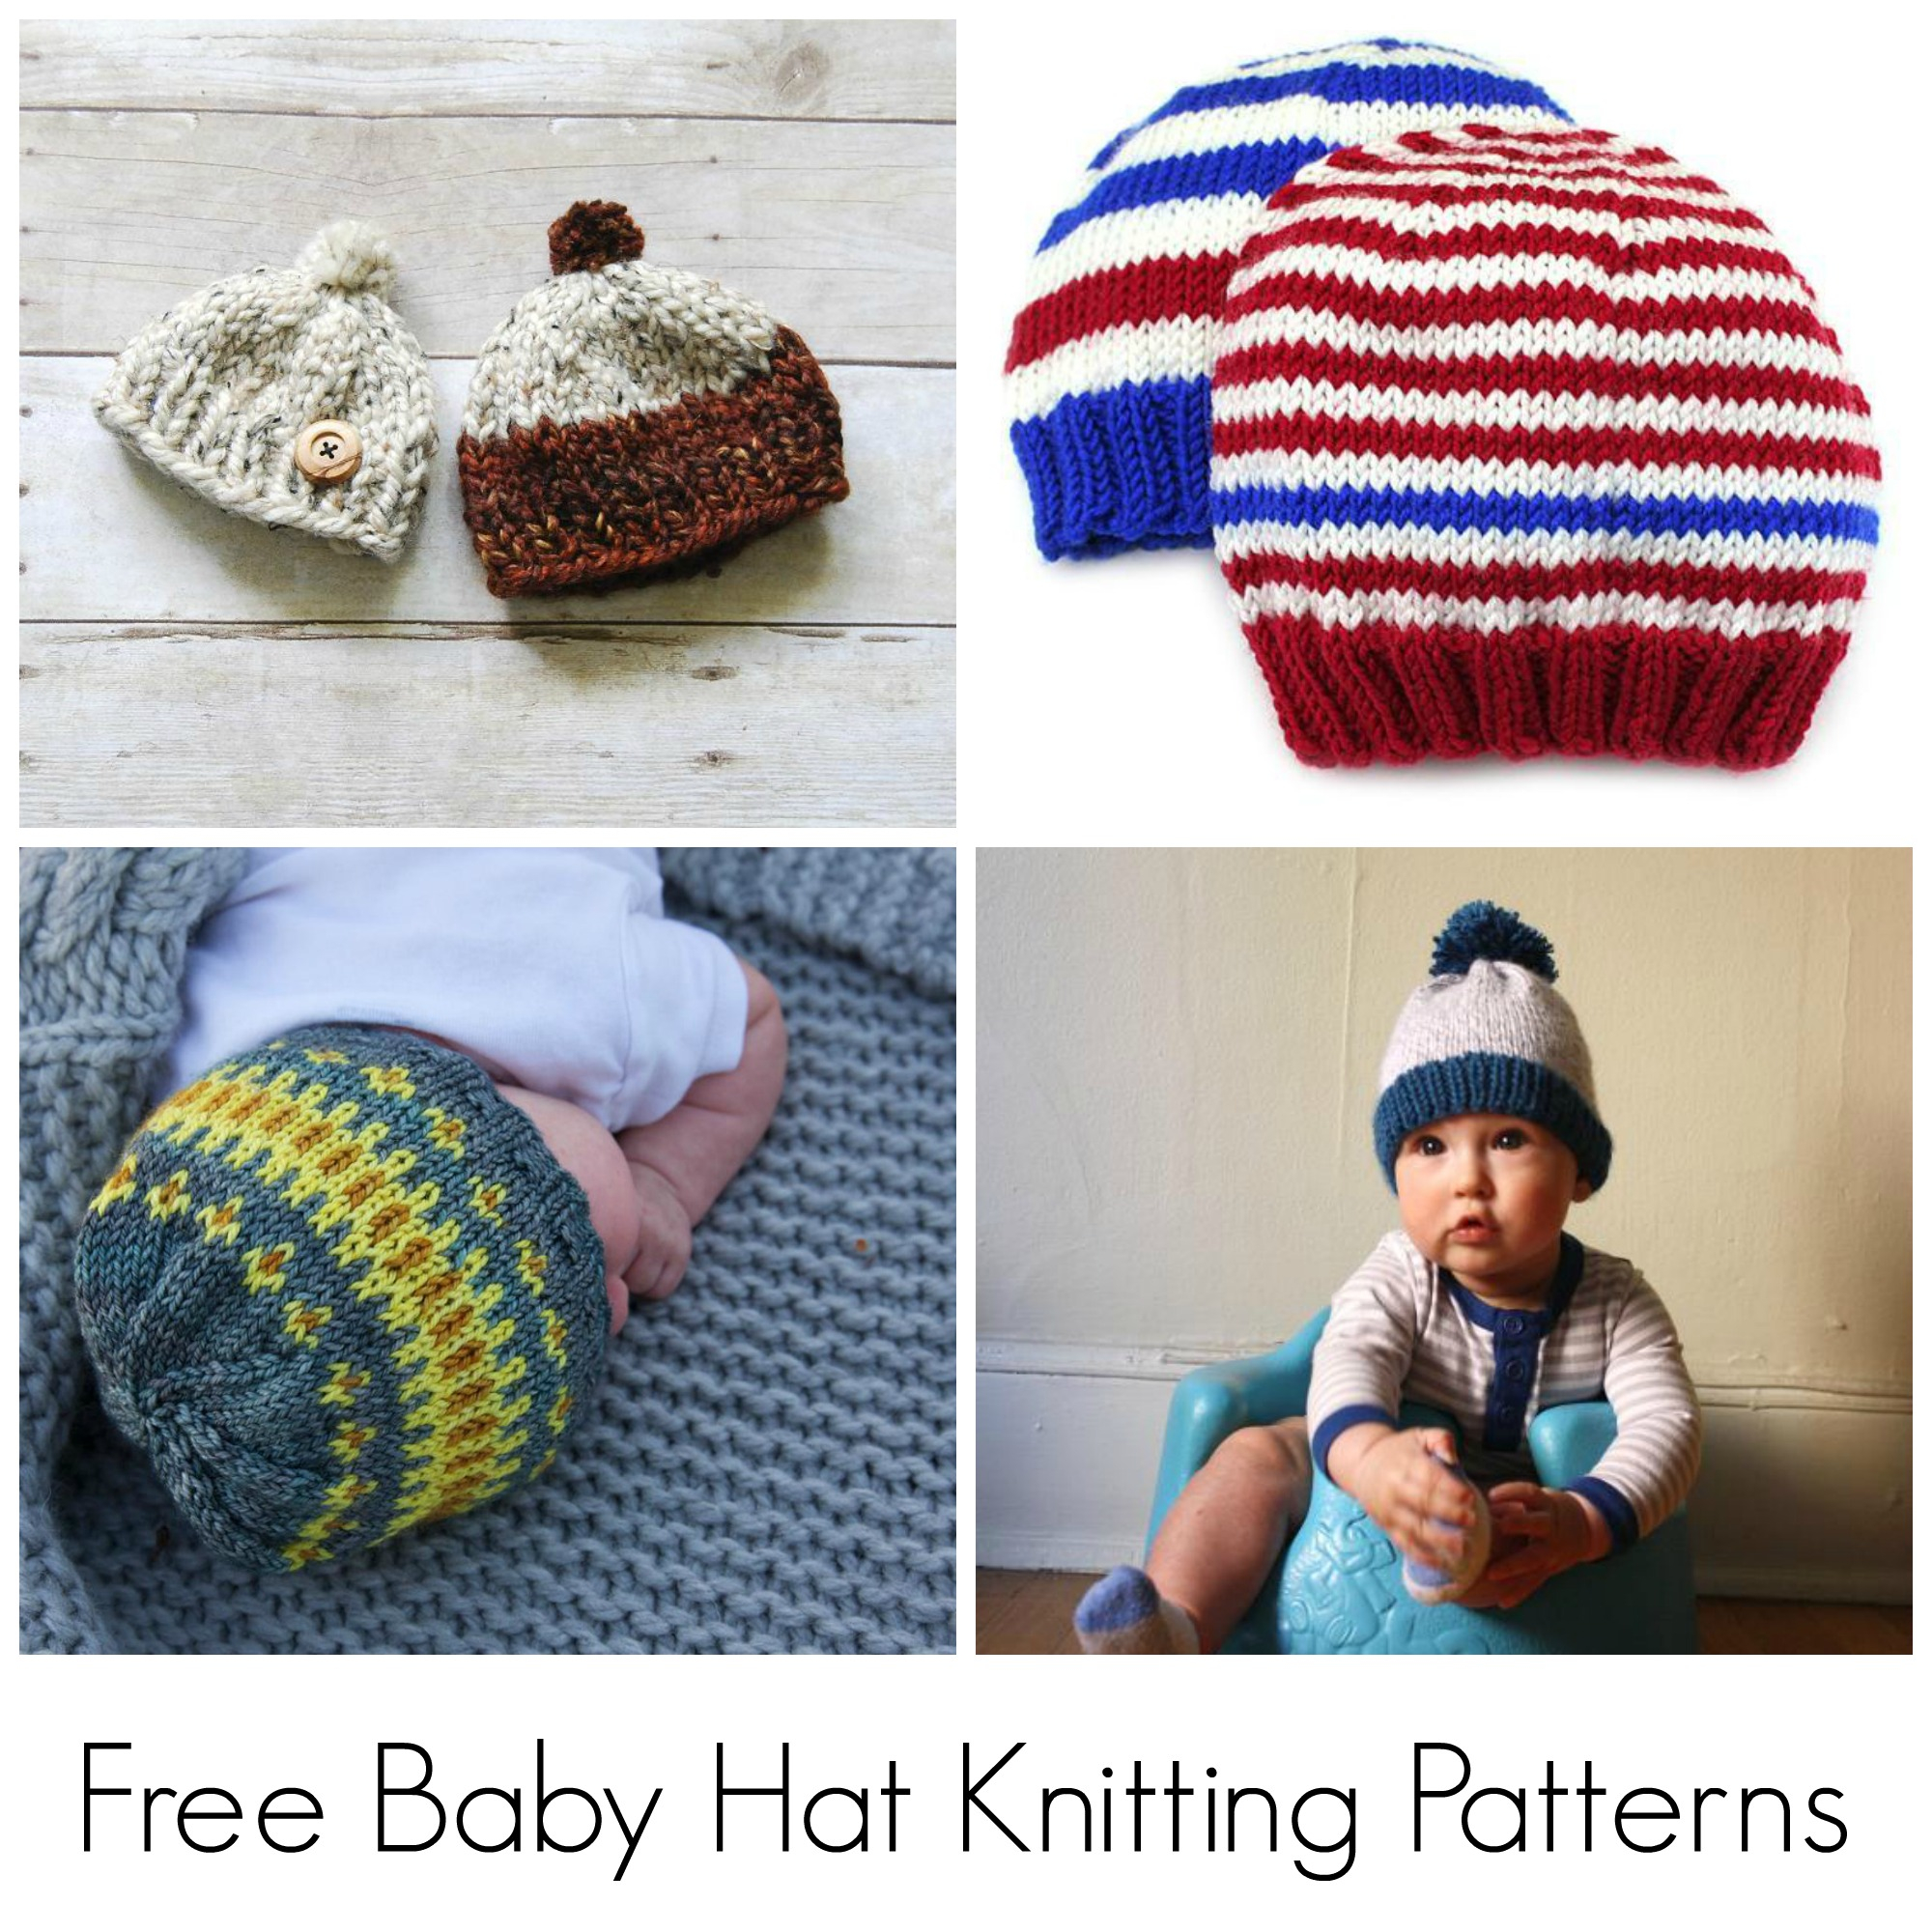 Knitting Patterns Baby Hat 10 Free Knitting Patterns For Ba Hats On Craftsy